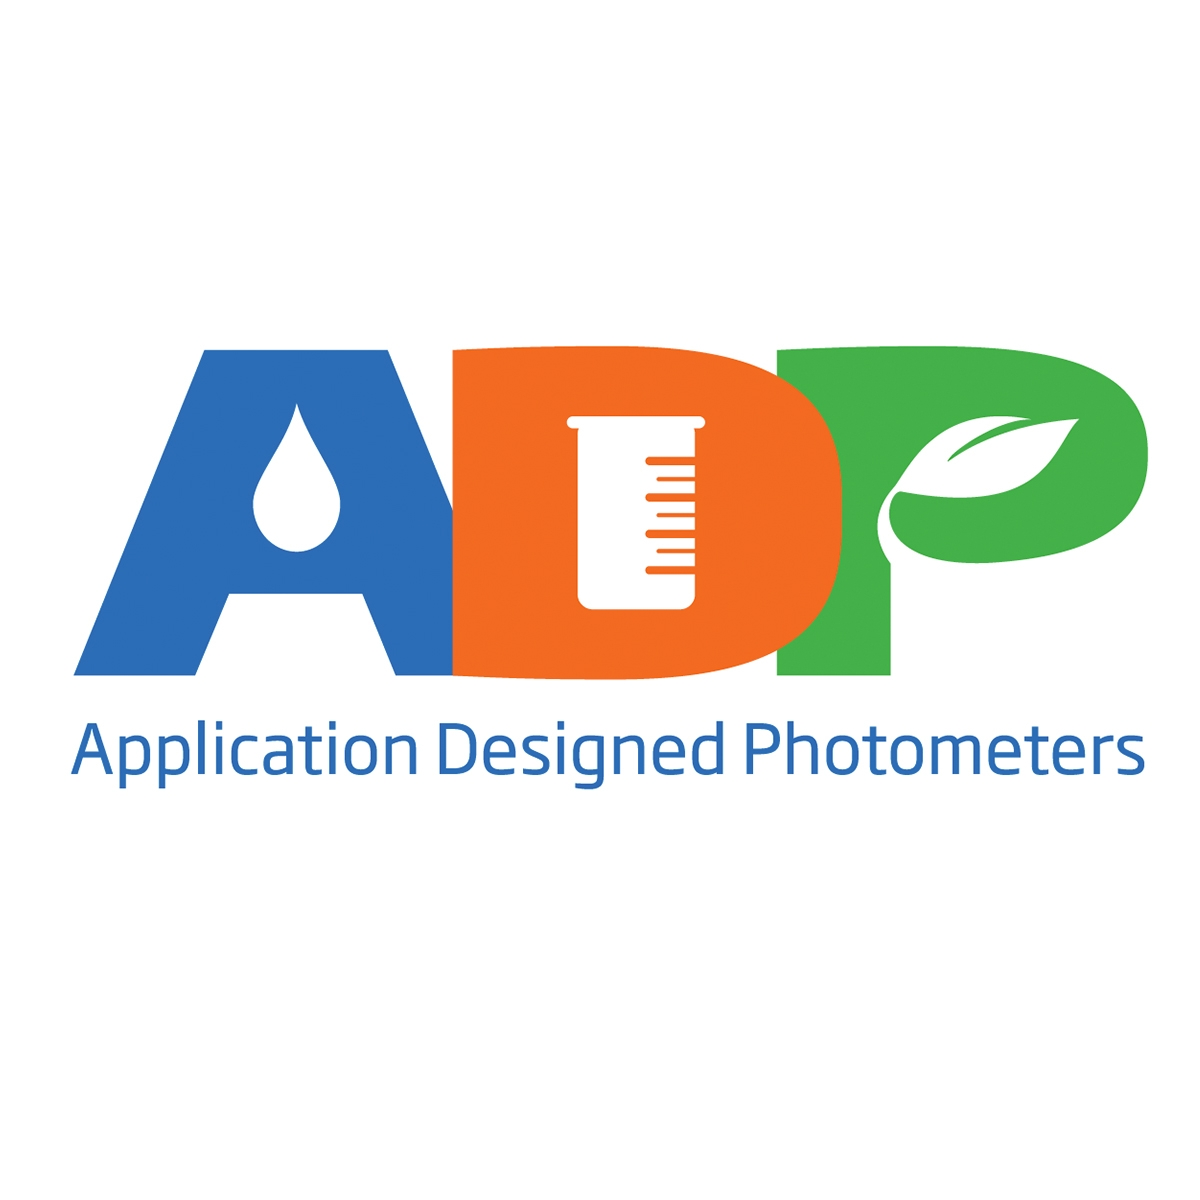 ADP application designed photometers